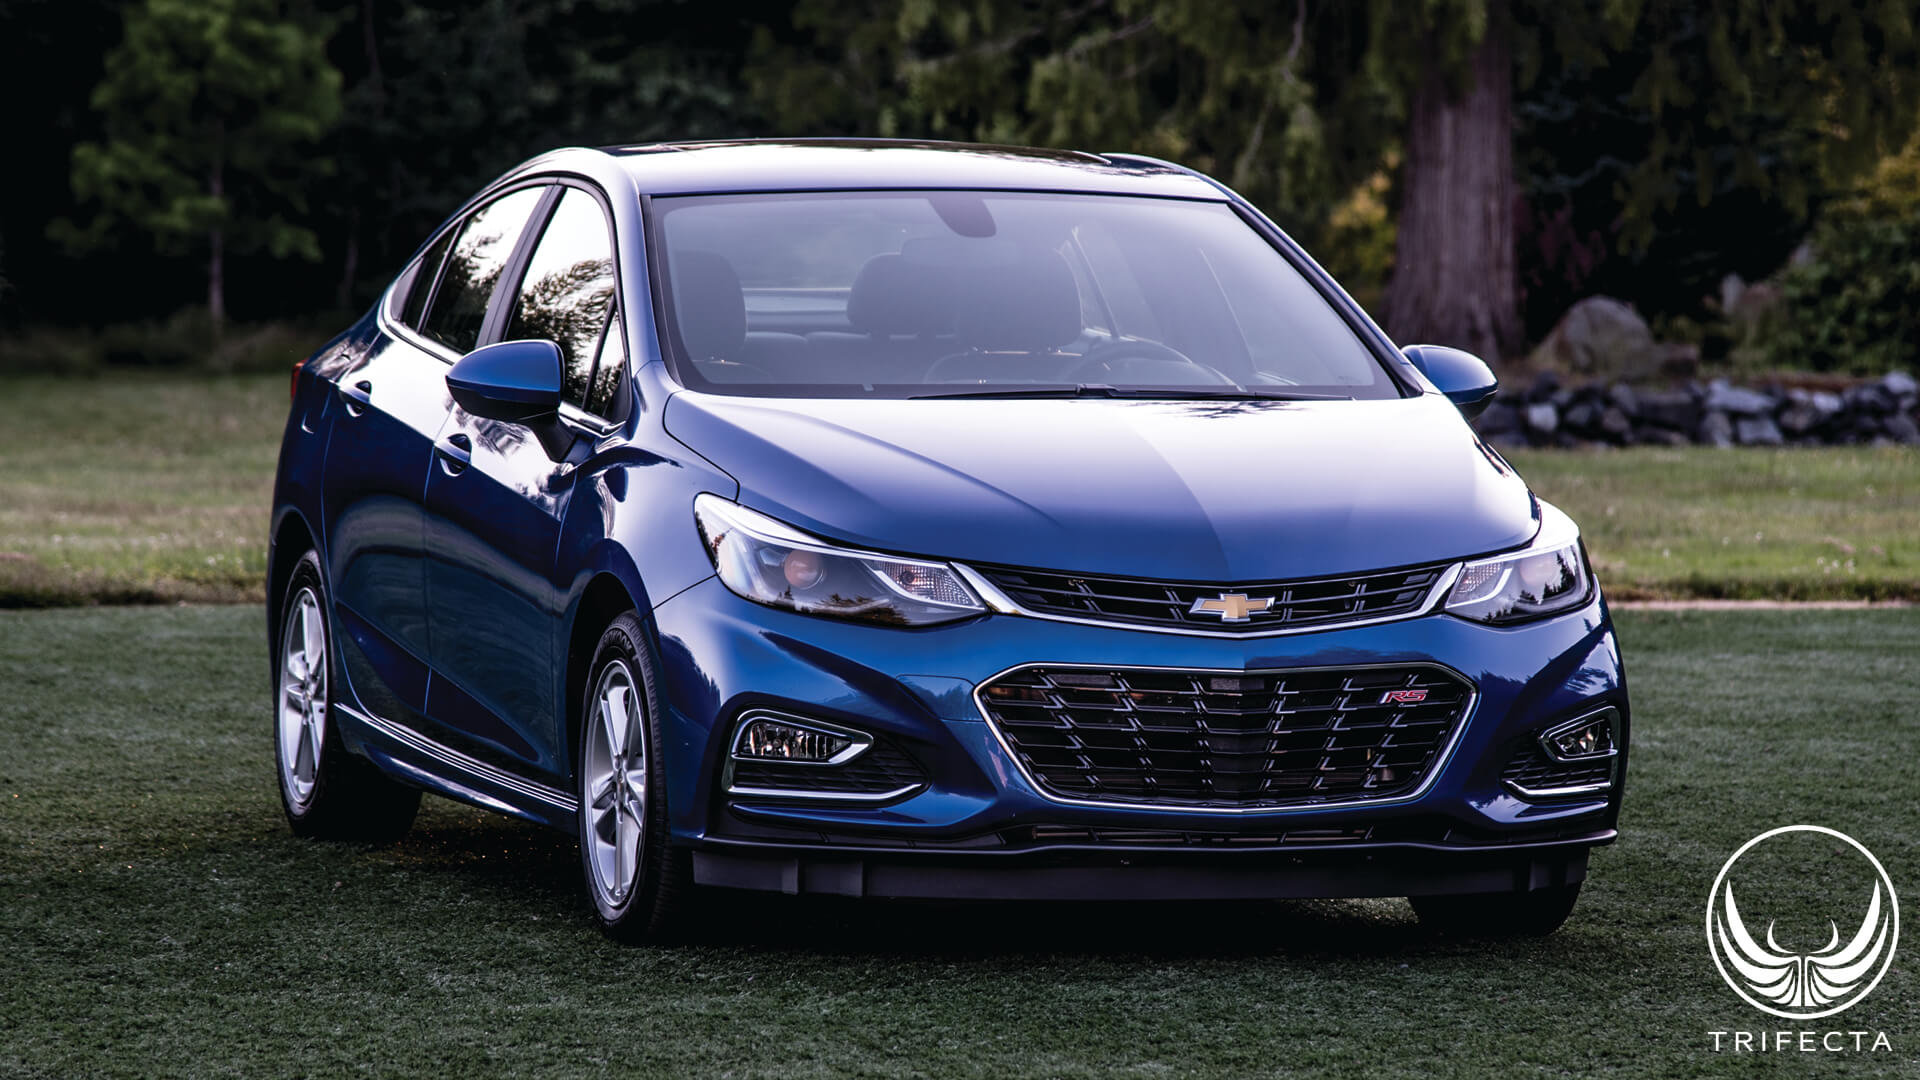 Product Review: 2016--2019 Chevrolet Cruze / Cruze Hatch - 1.4L Turbo Advantage